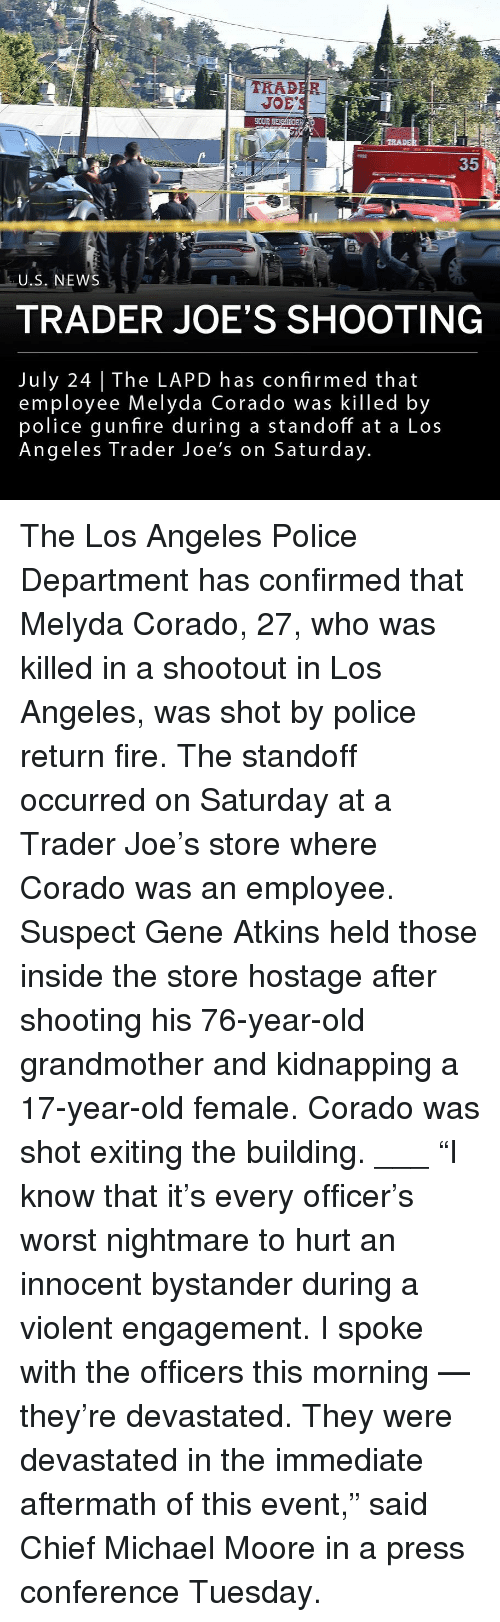 """Fire, Memes, and News: 1-2  TRAD  EOUR  35  U.S. NEWS  TRADER JOE'S SHOOTING  July 24 The LAPD has confirmed that  employee Melyda Corado was killed by  police gunfire during a standoff at a Los  Angeles Trader Joe's on Saturday The Los Angeles Police Department has confirmed that Melyda Corado, 27, who was killed in a shootout in Los Angeles, was shot by police return fire. The standoff occurred on Saturday at a Trader Joe's store where Corado was an employee. Suspect Gene Atkins held those inside the store hostage after shooting his 76-year-old grandmother and kidnapping a 17-year-old female. Corado was shot exiting the building. ___ """"I know that it's every officer's worst nightmare to hurt an innocent bystander during a violent engagement. I spoke with the officers this morning — they're devastated. They were devastated in the immediate aftermath of this event,"""" said Chief Michael Moore in a press conference Tuesday."""